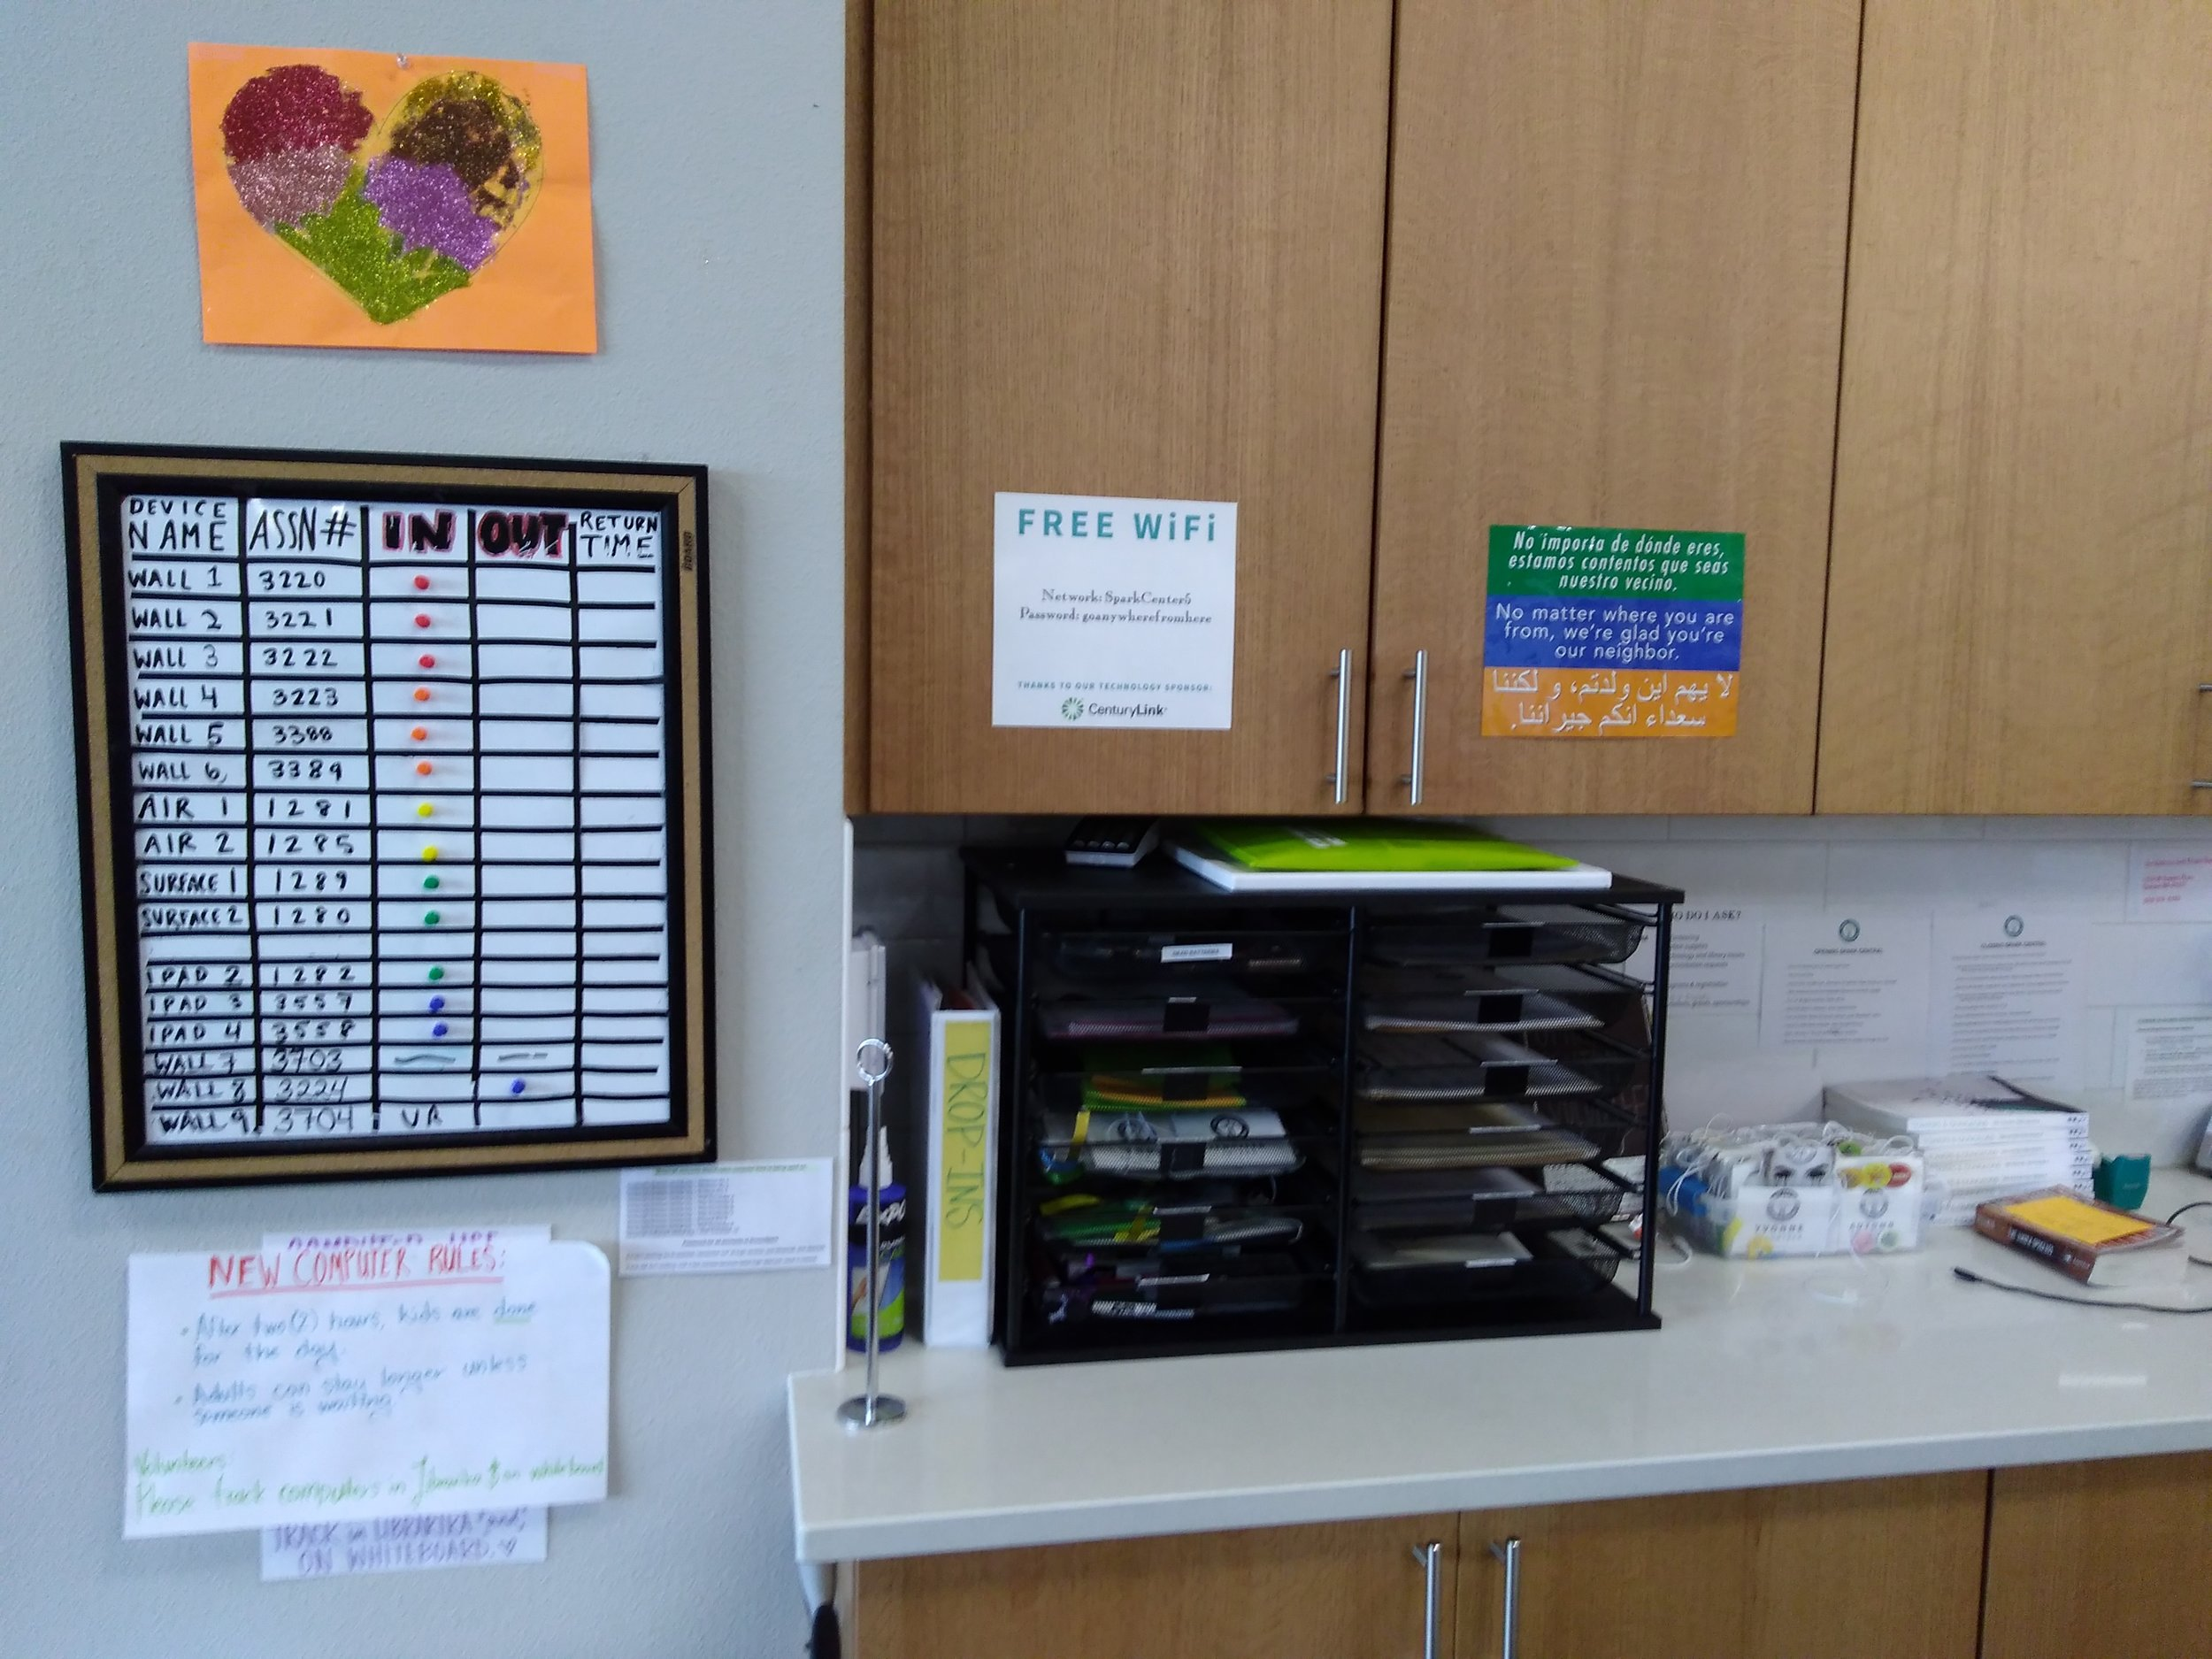 Back Counter - Completed membership forms are located in the file basket on the back counter, while printer paper, envelopes, VR head gear and accessories, bicycle locks, and office supplies are in the back cupboards.